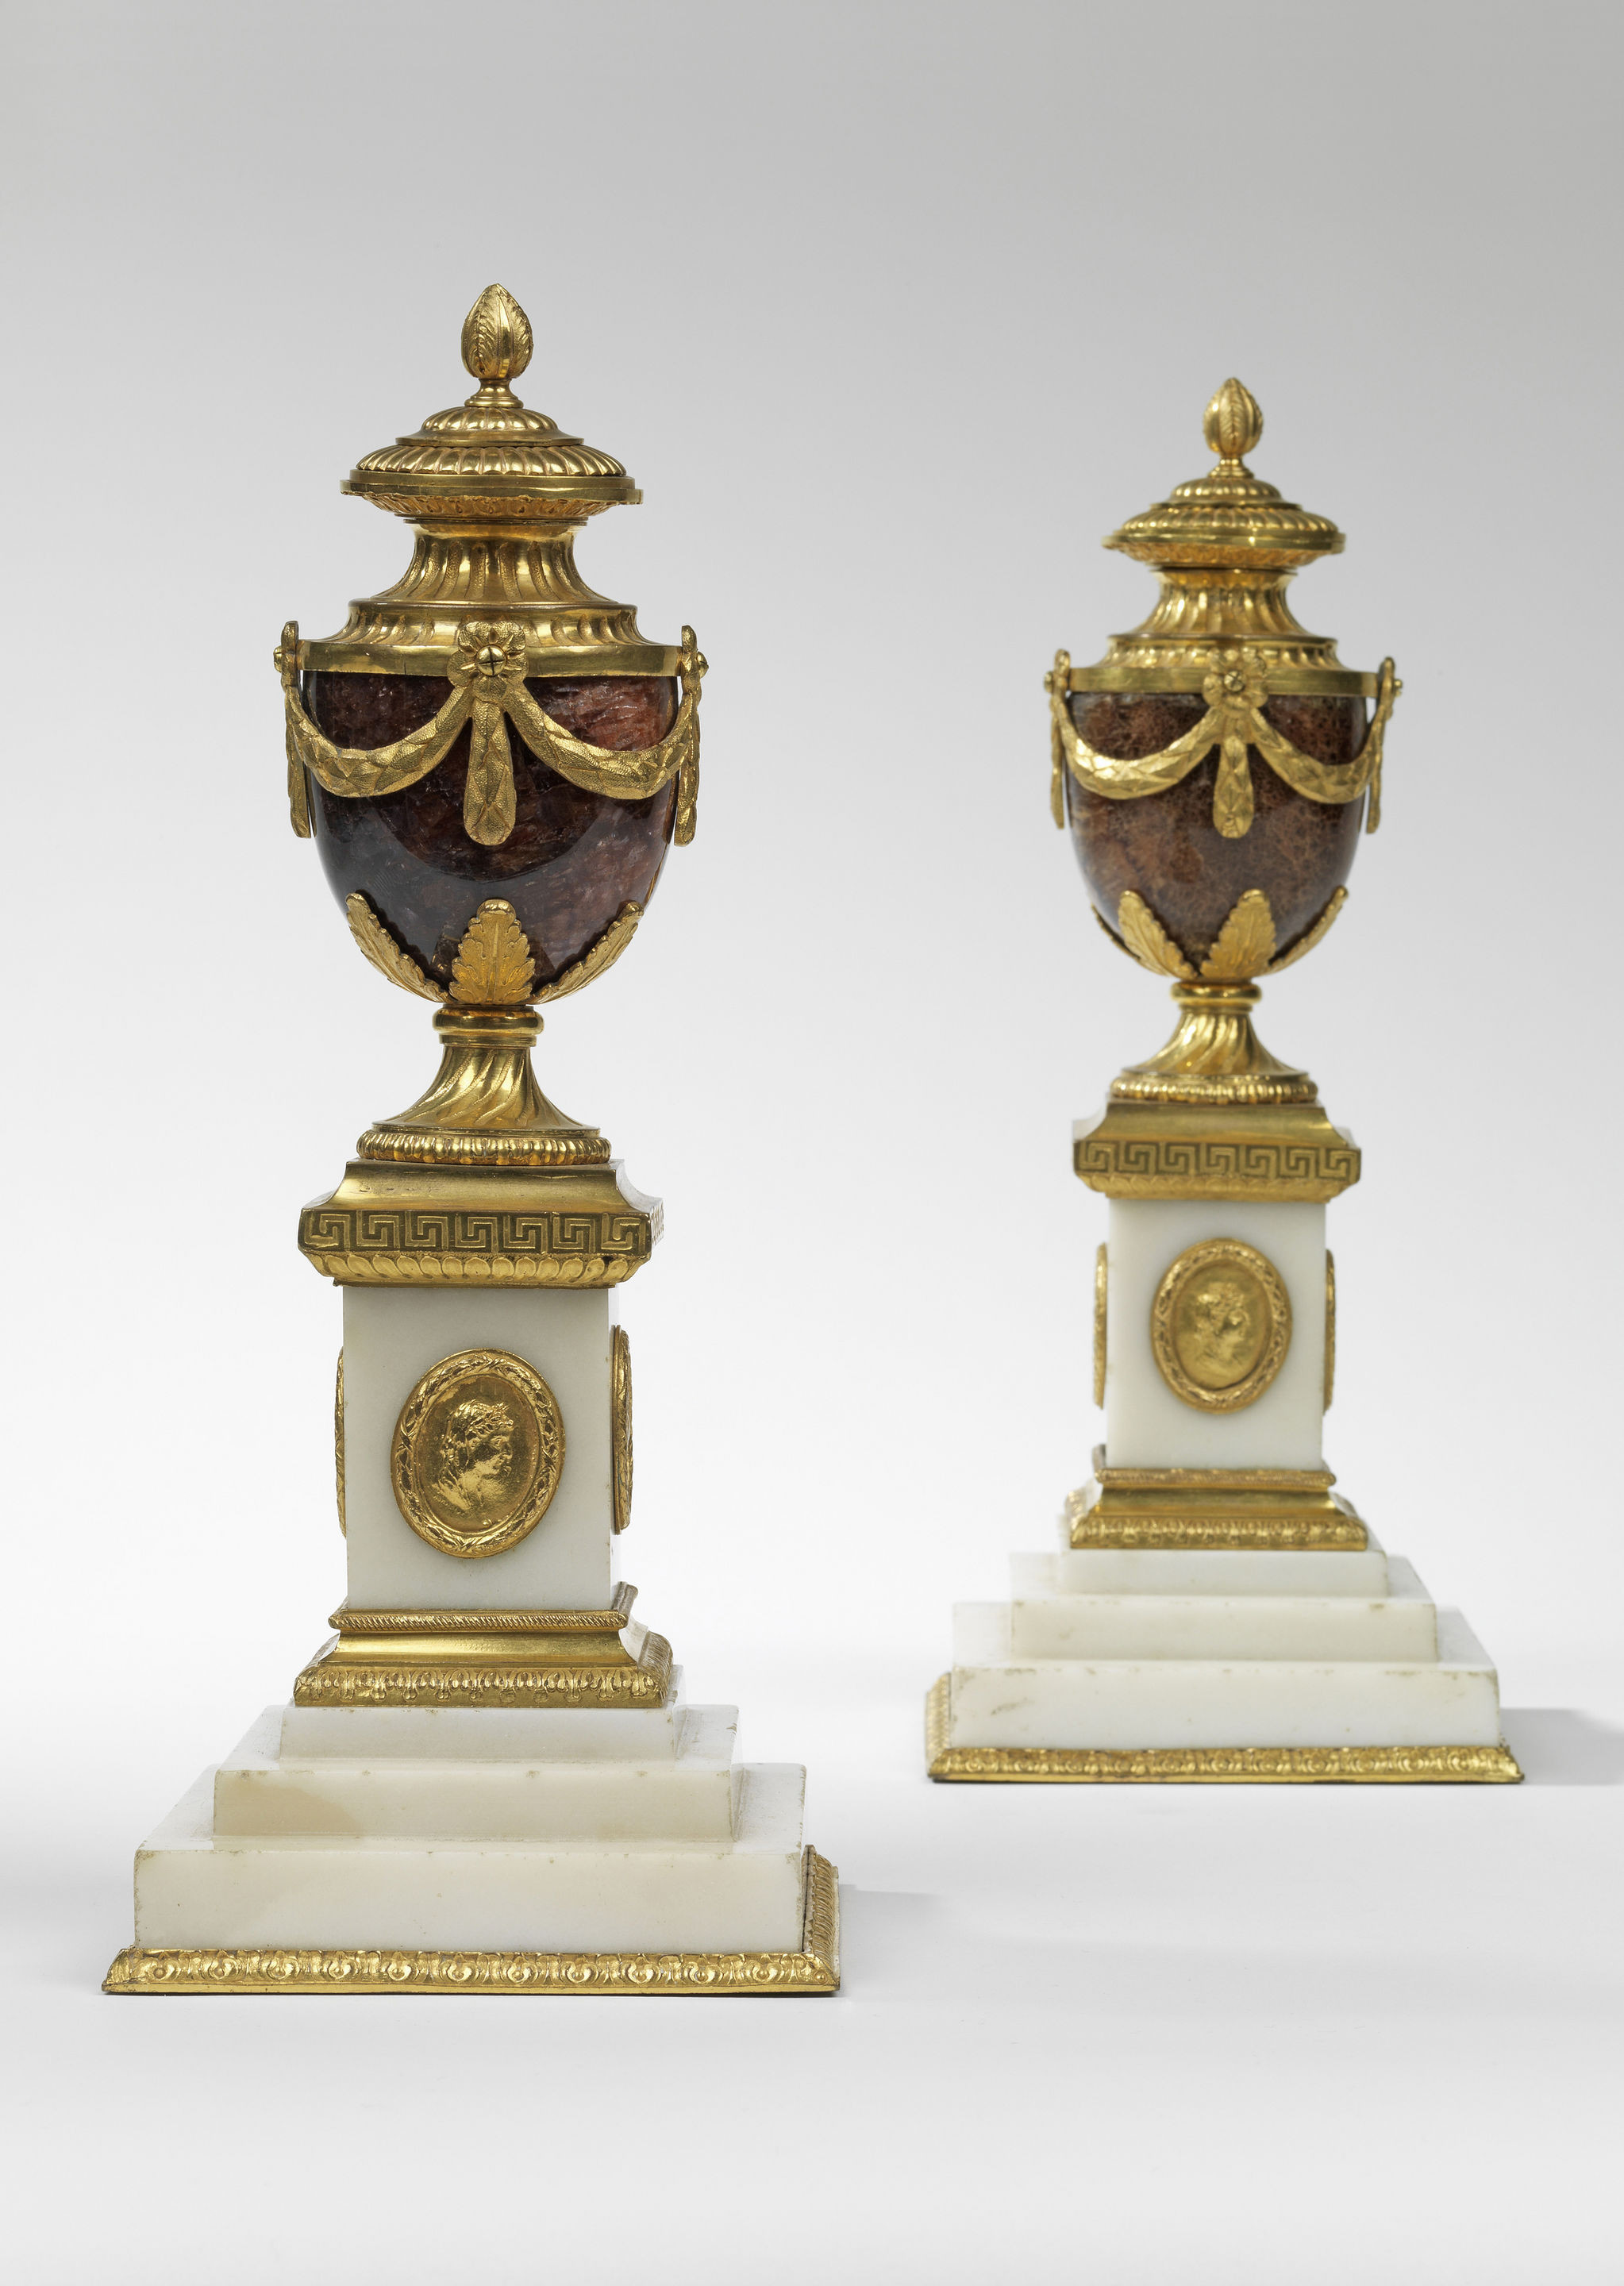 gold mosaic vase of a pair of matthew boulton cleopatra candle vases c 1770 england in a pair of matthew boulton cleopatra candle vases